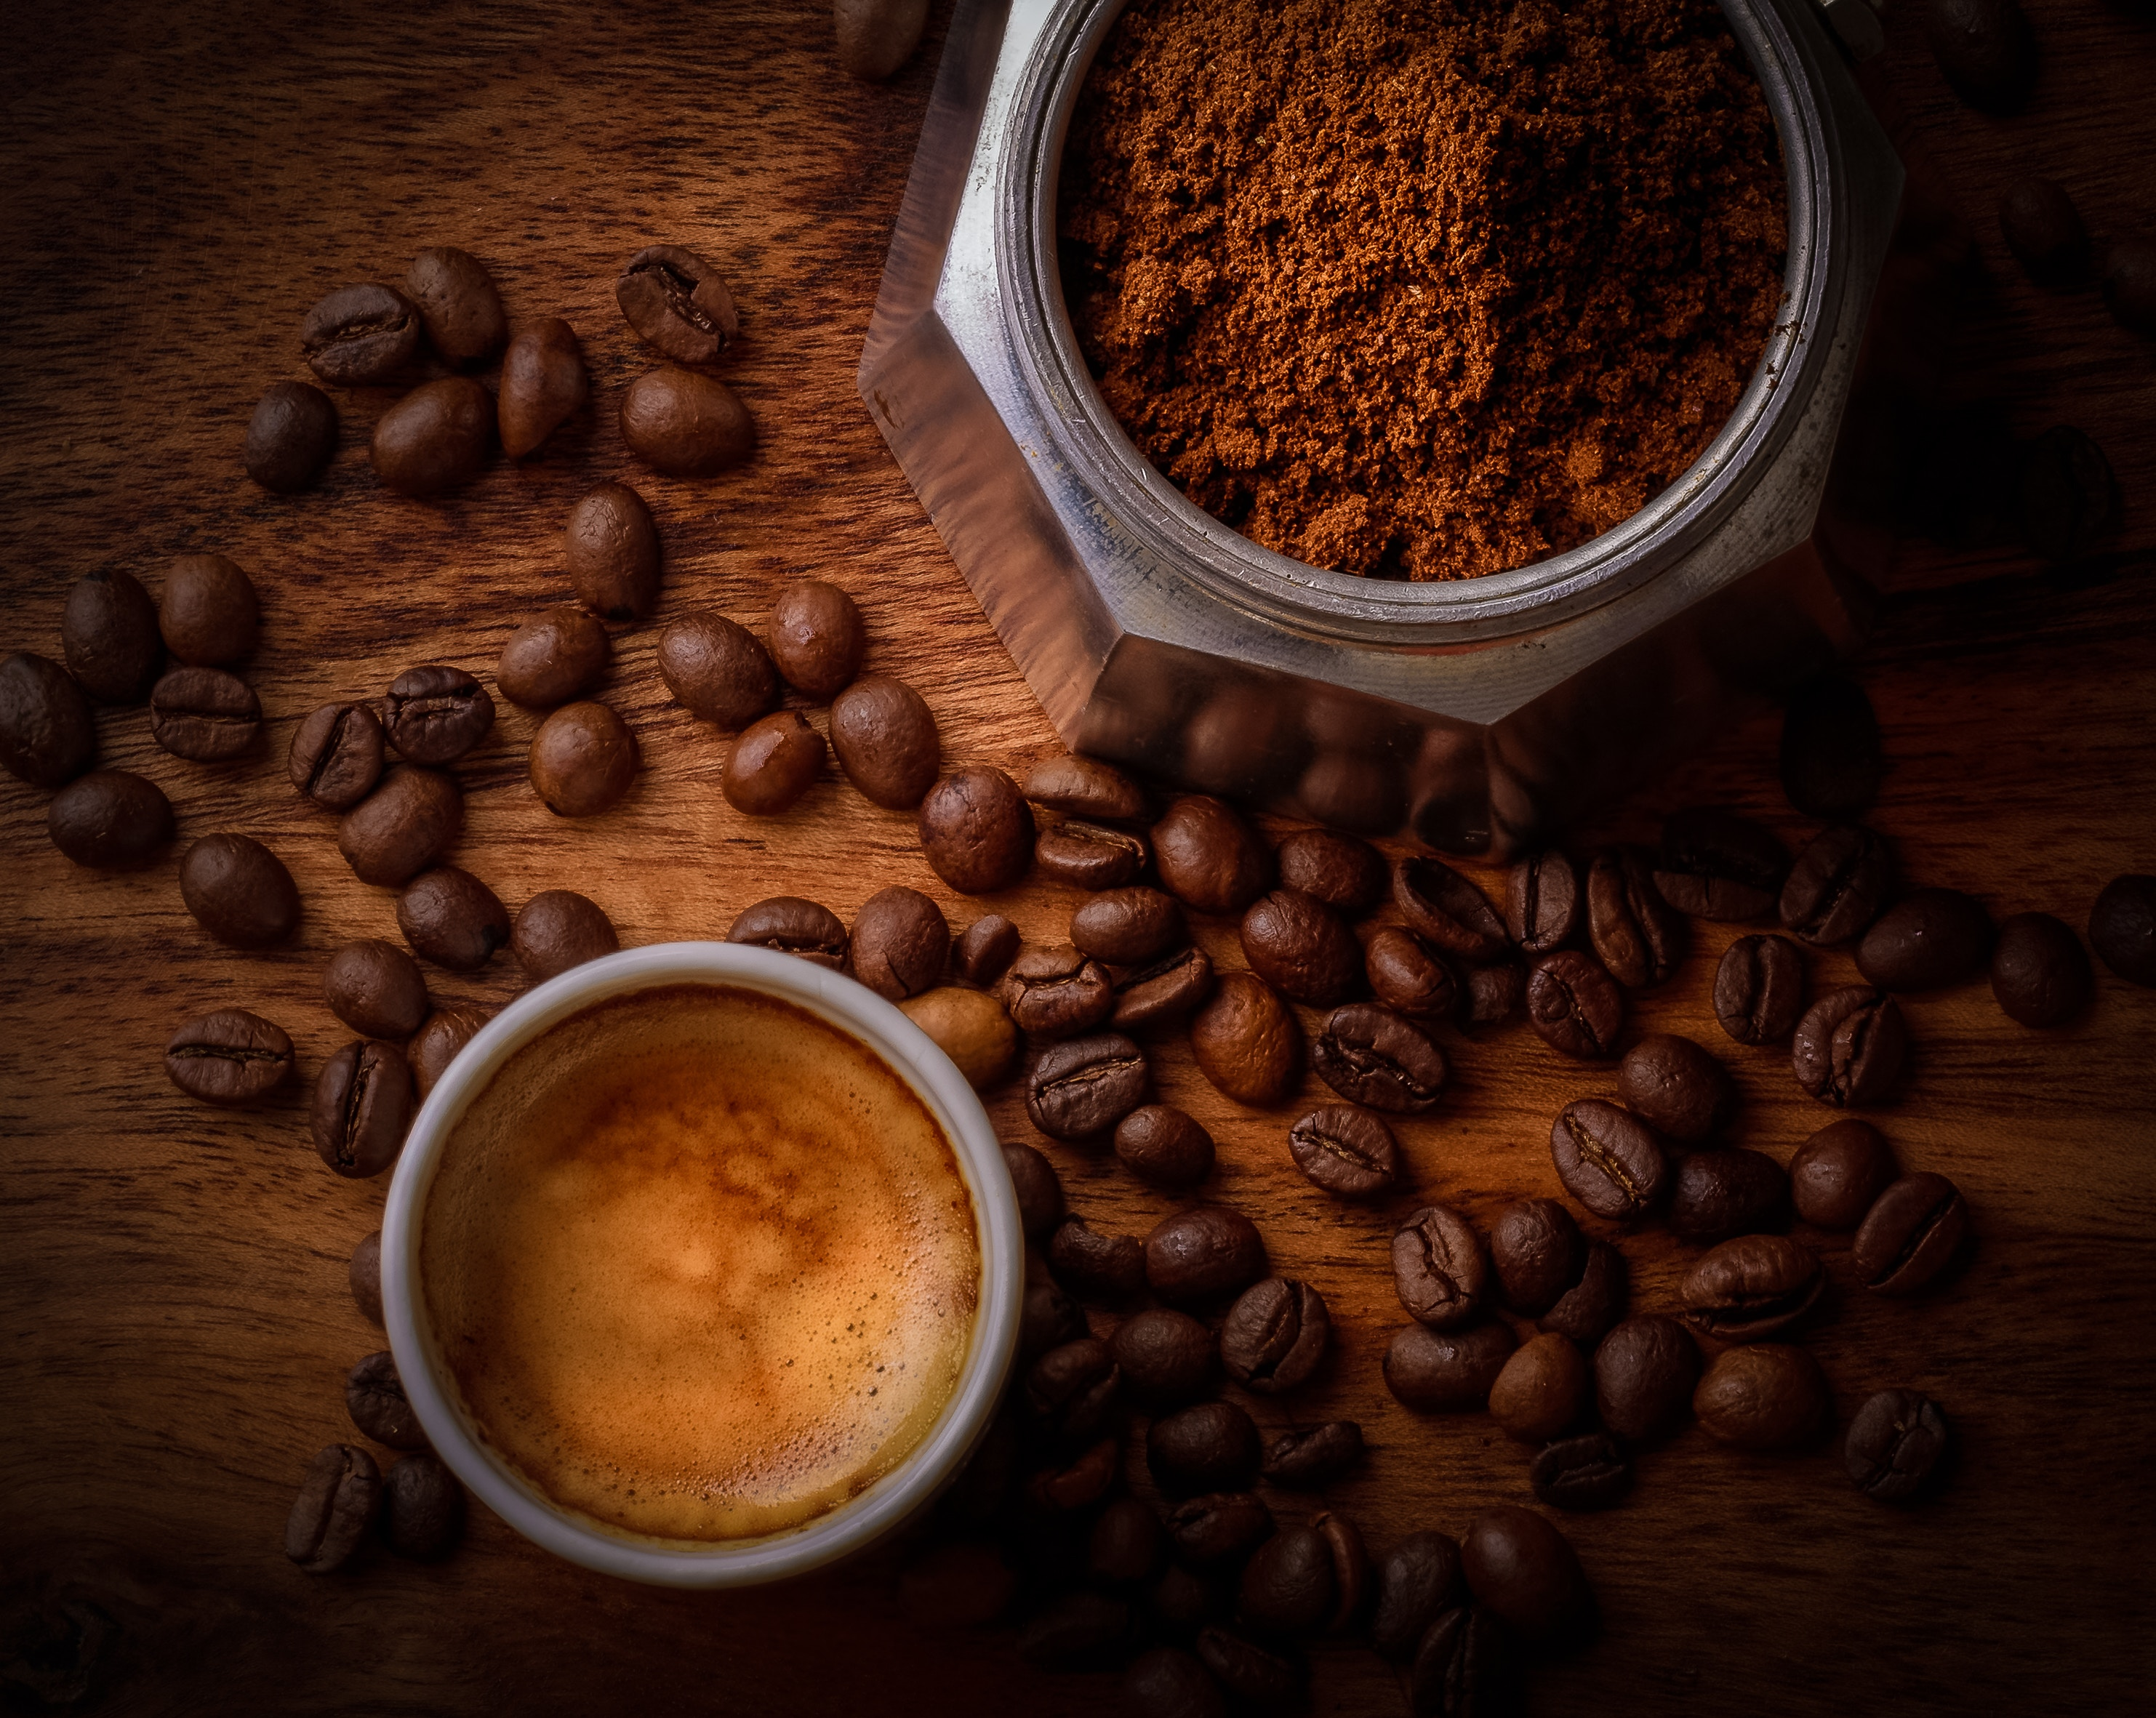 Coffee beans, ground coffee and brewed coffee